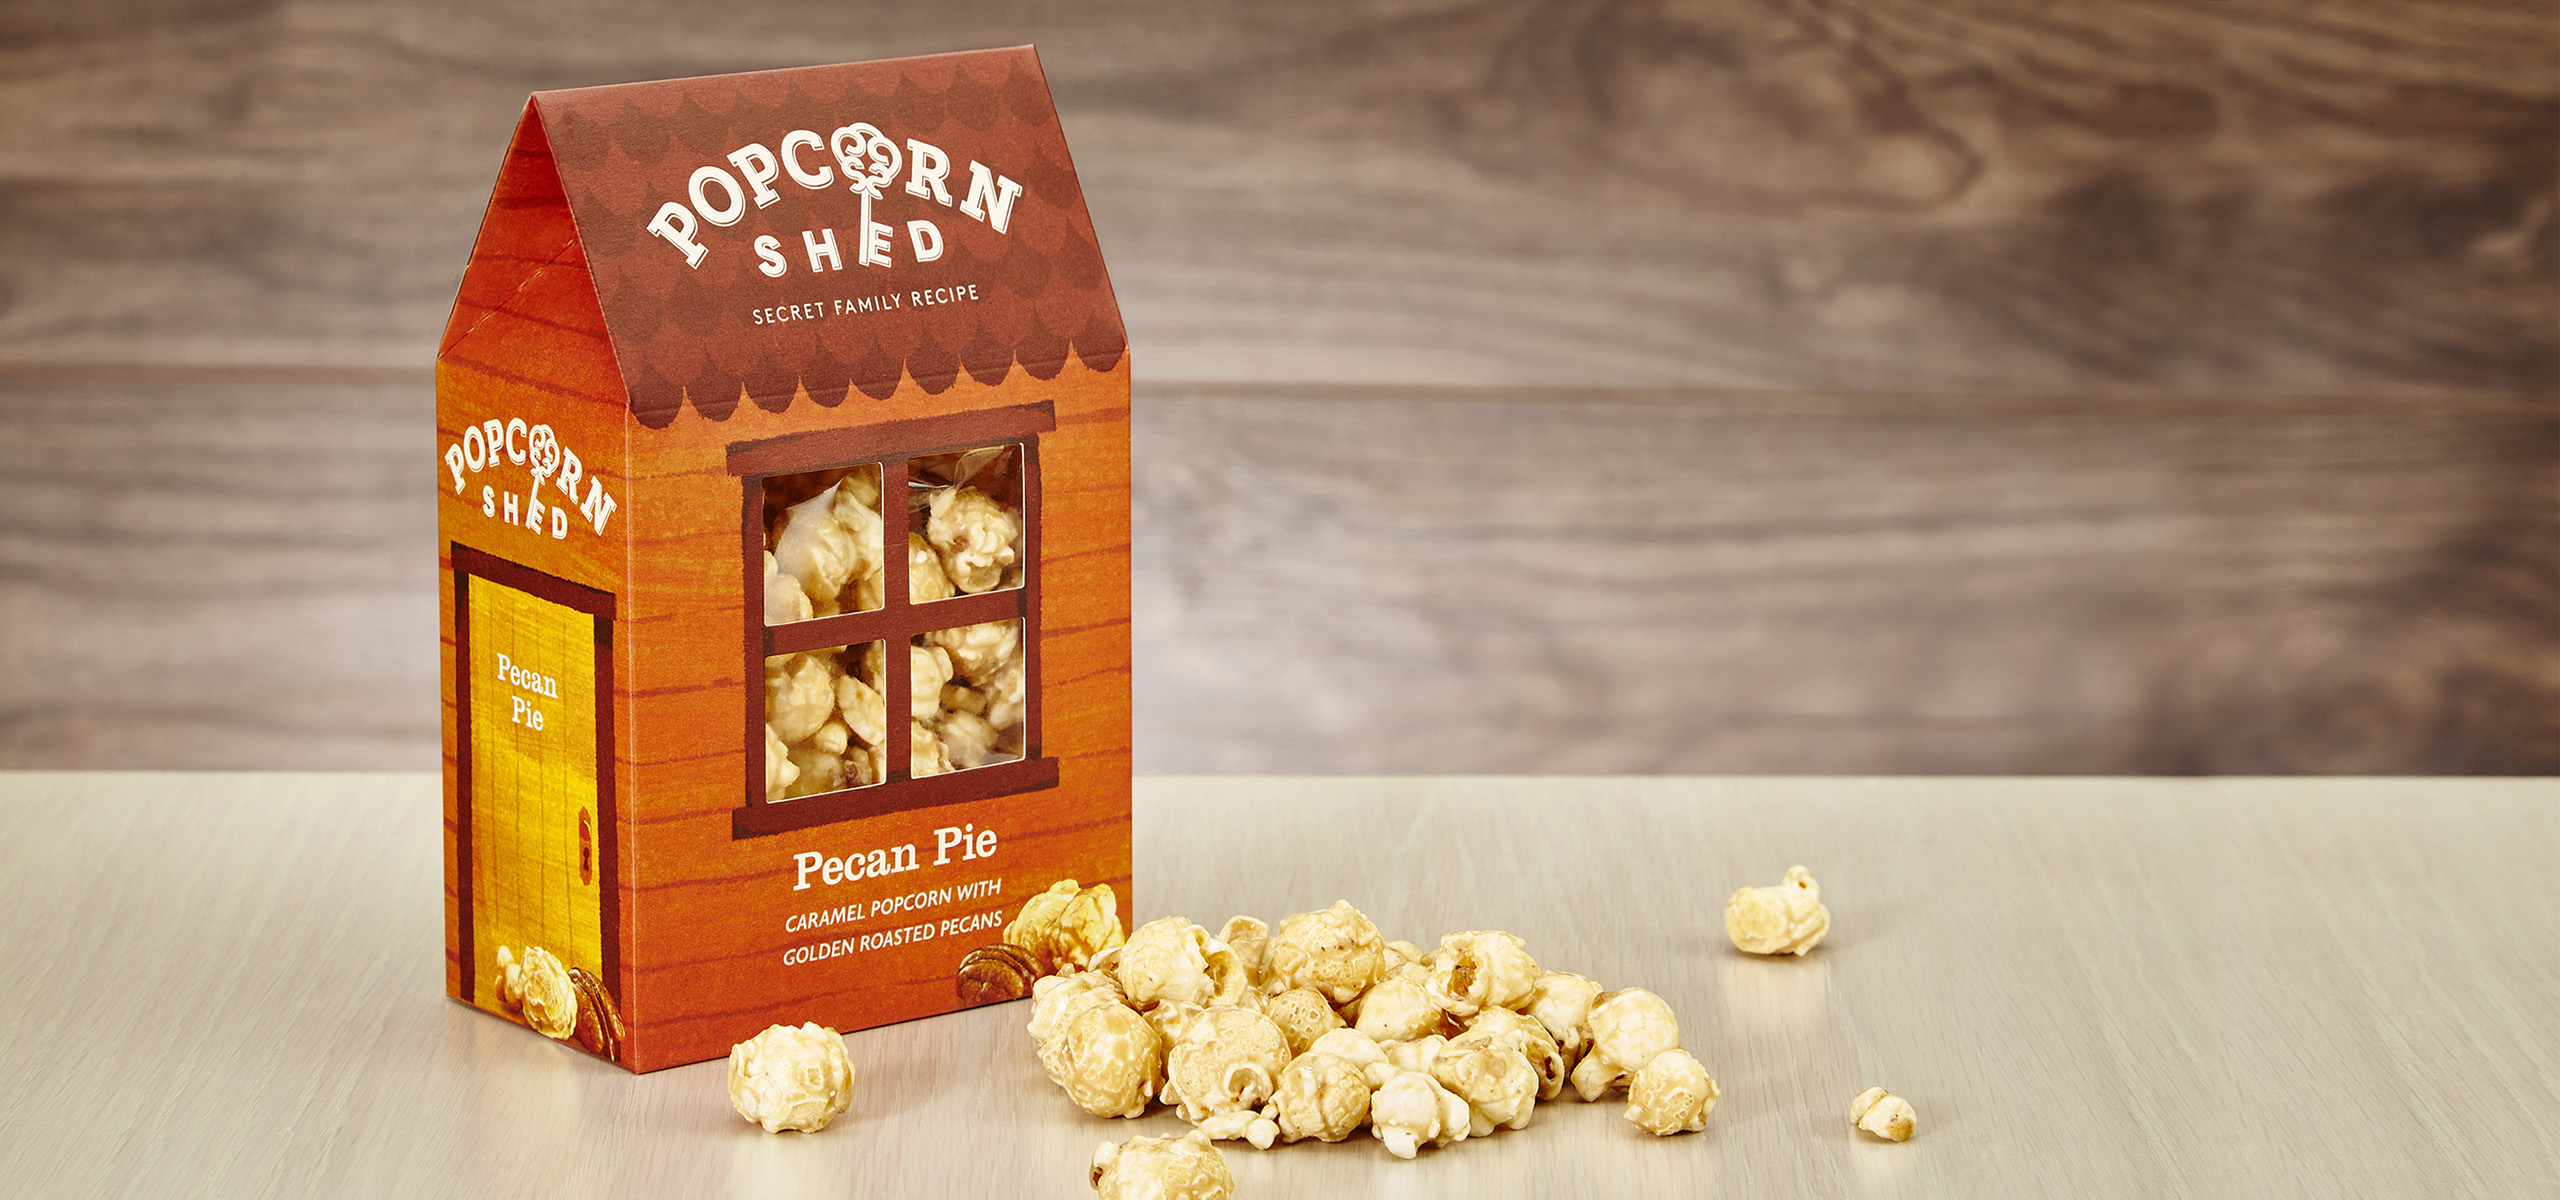 Pecan flavour packaging design for food startup brand Popcorn Shed, designed by White Bear Studio